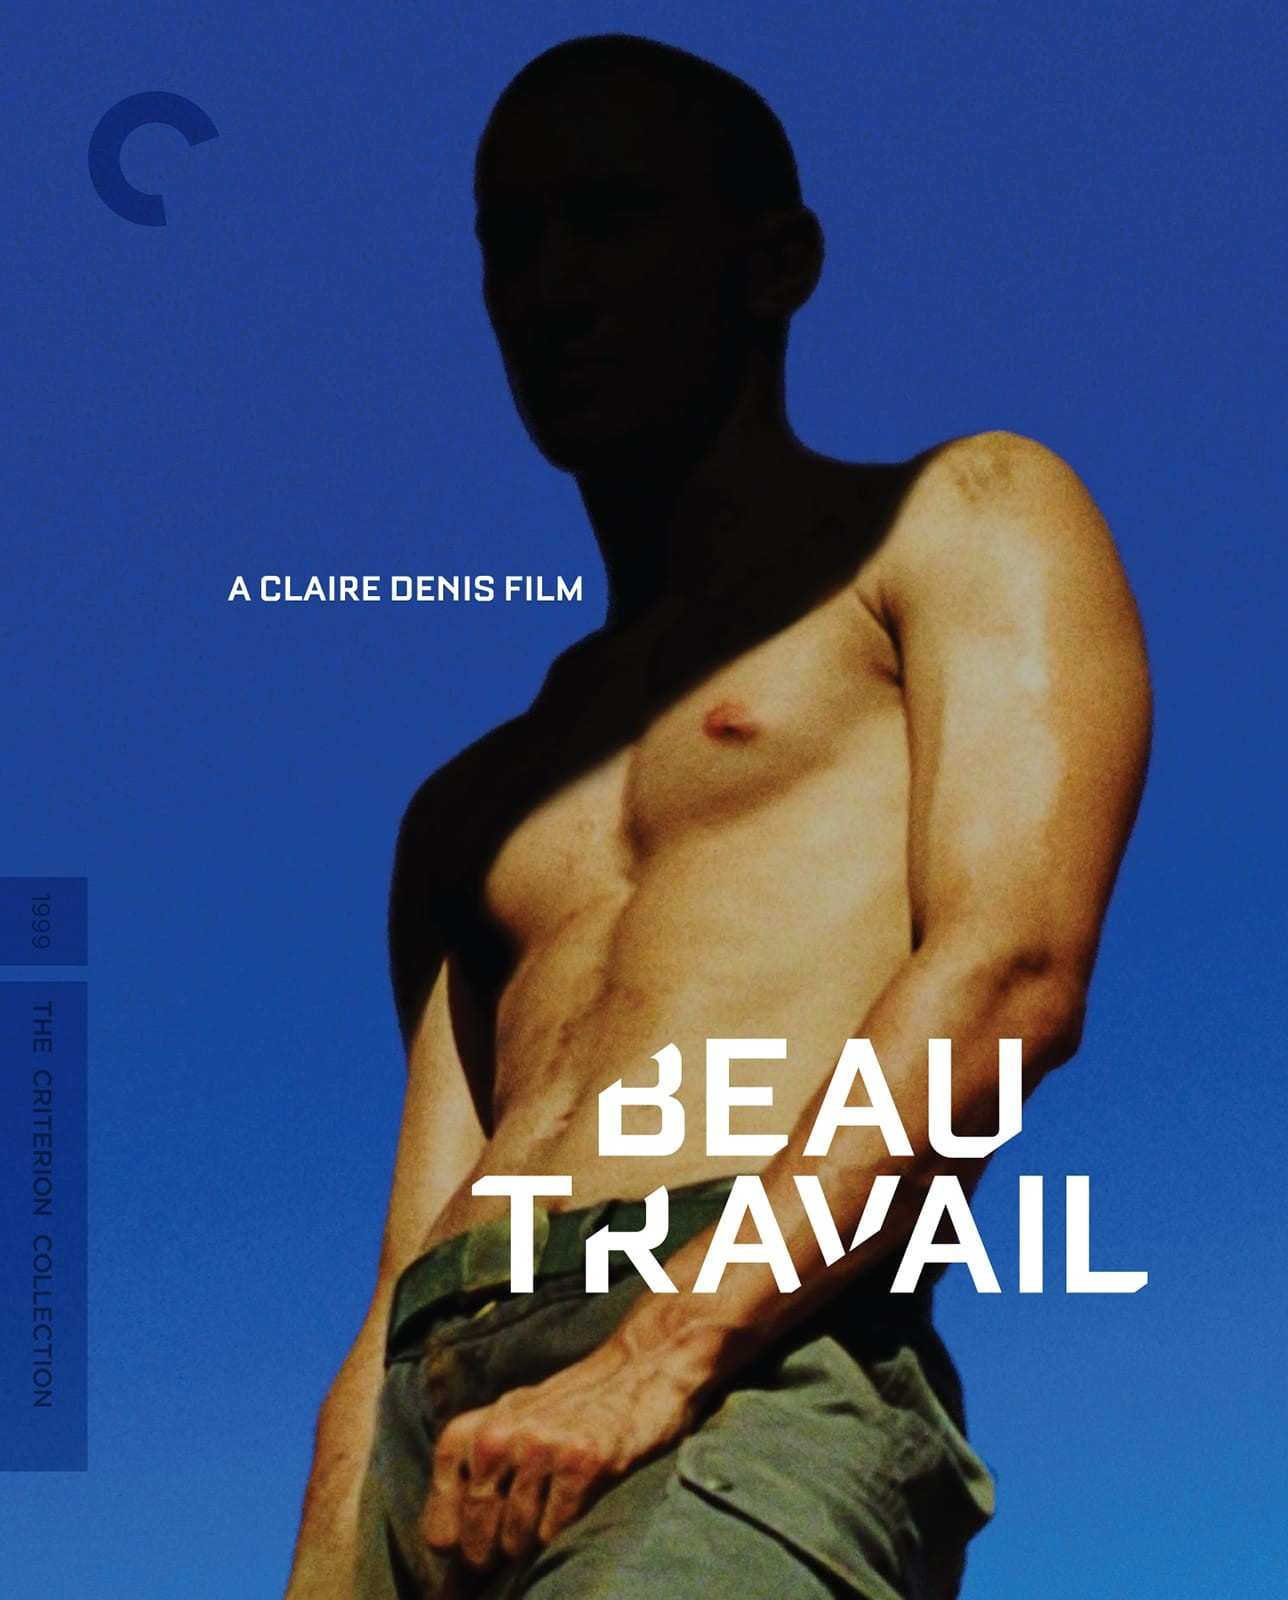 Beau travail (1999) | The Criterion Collection